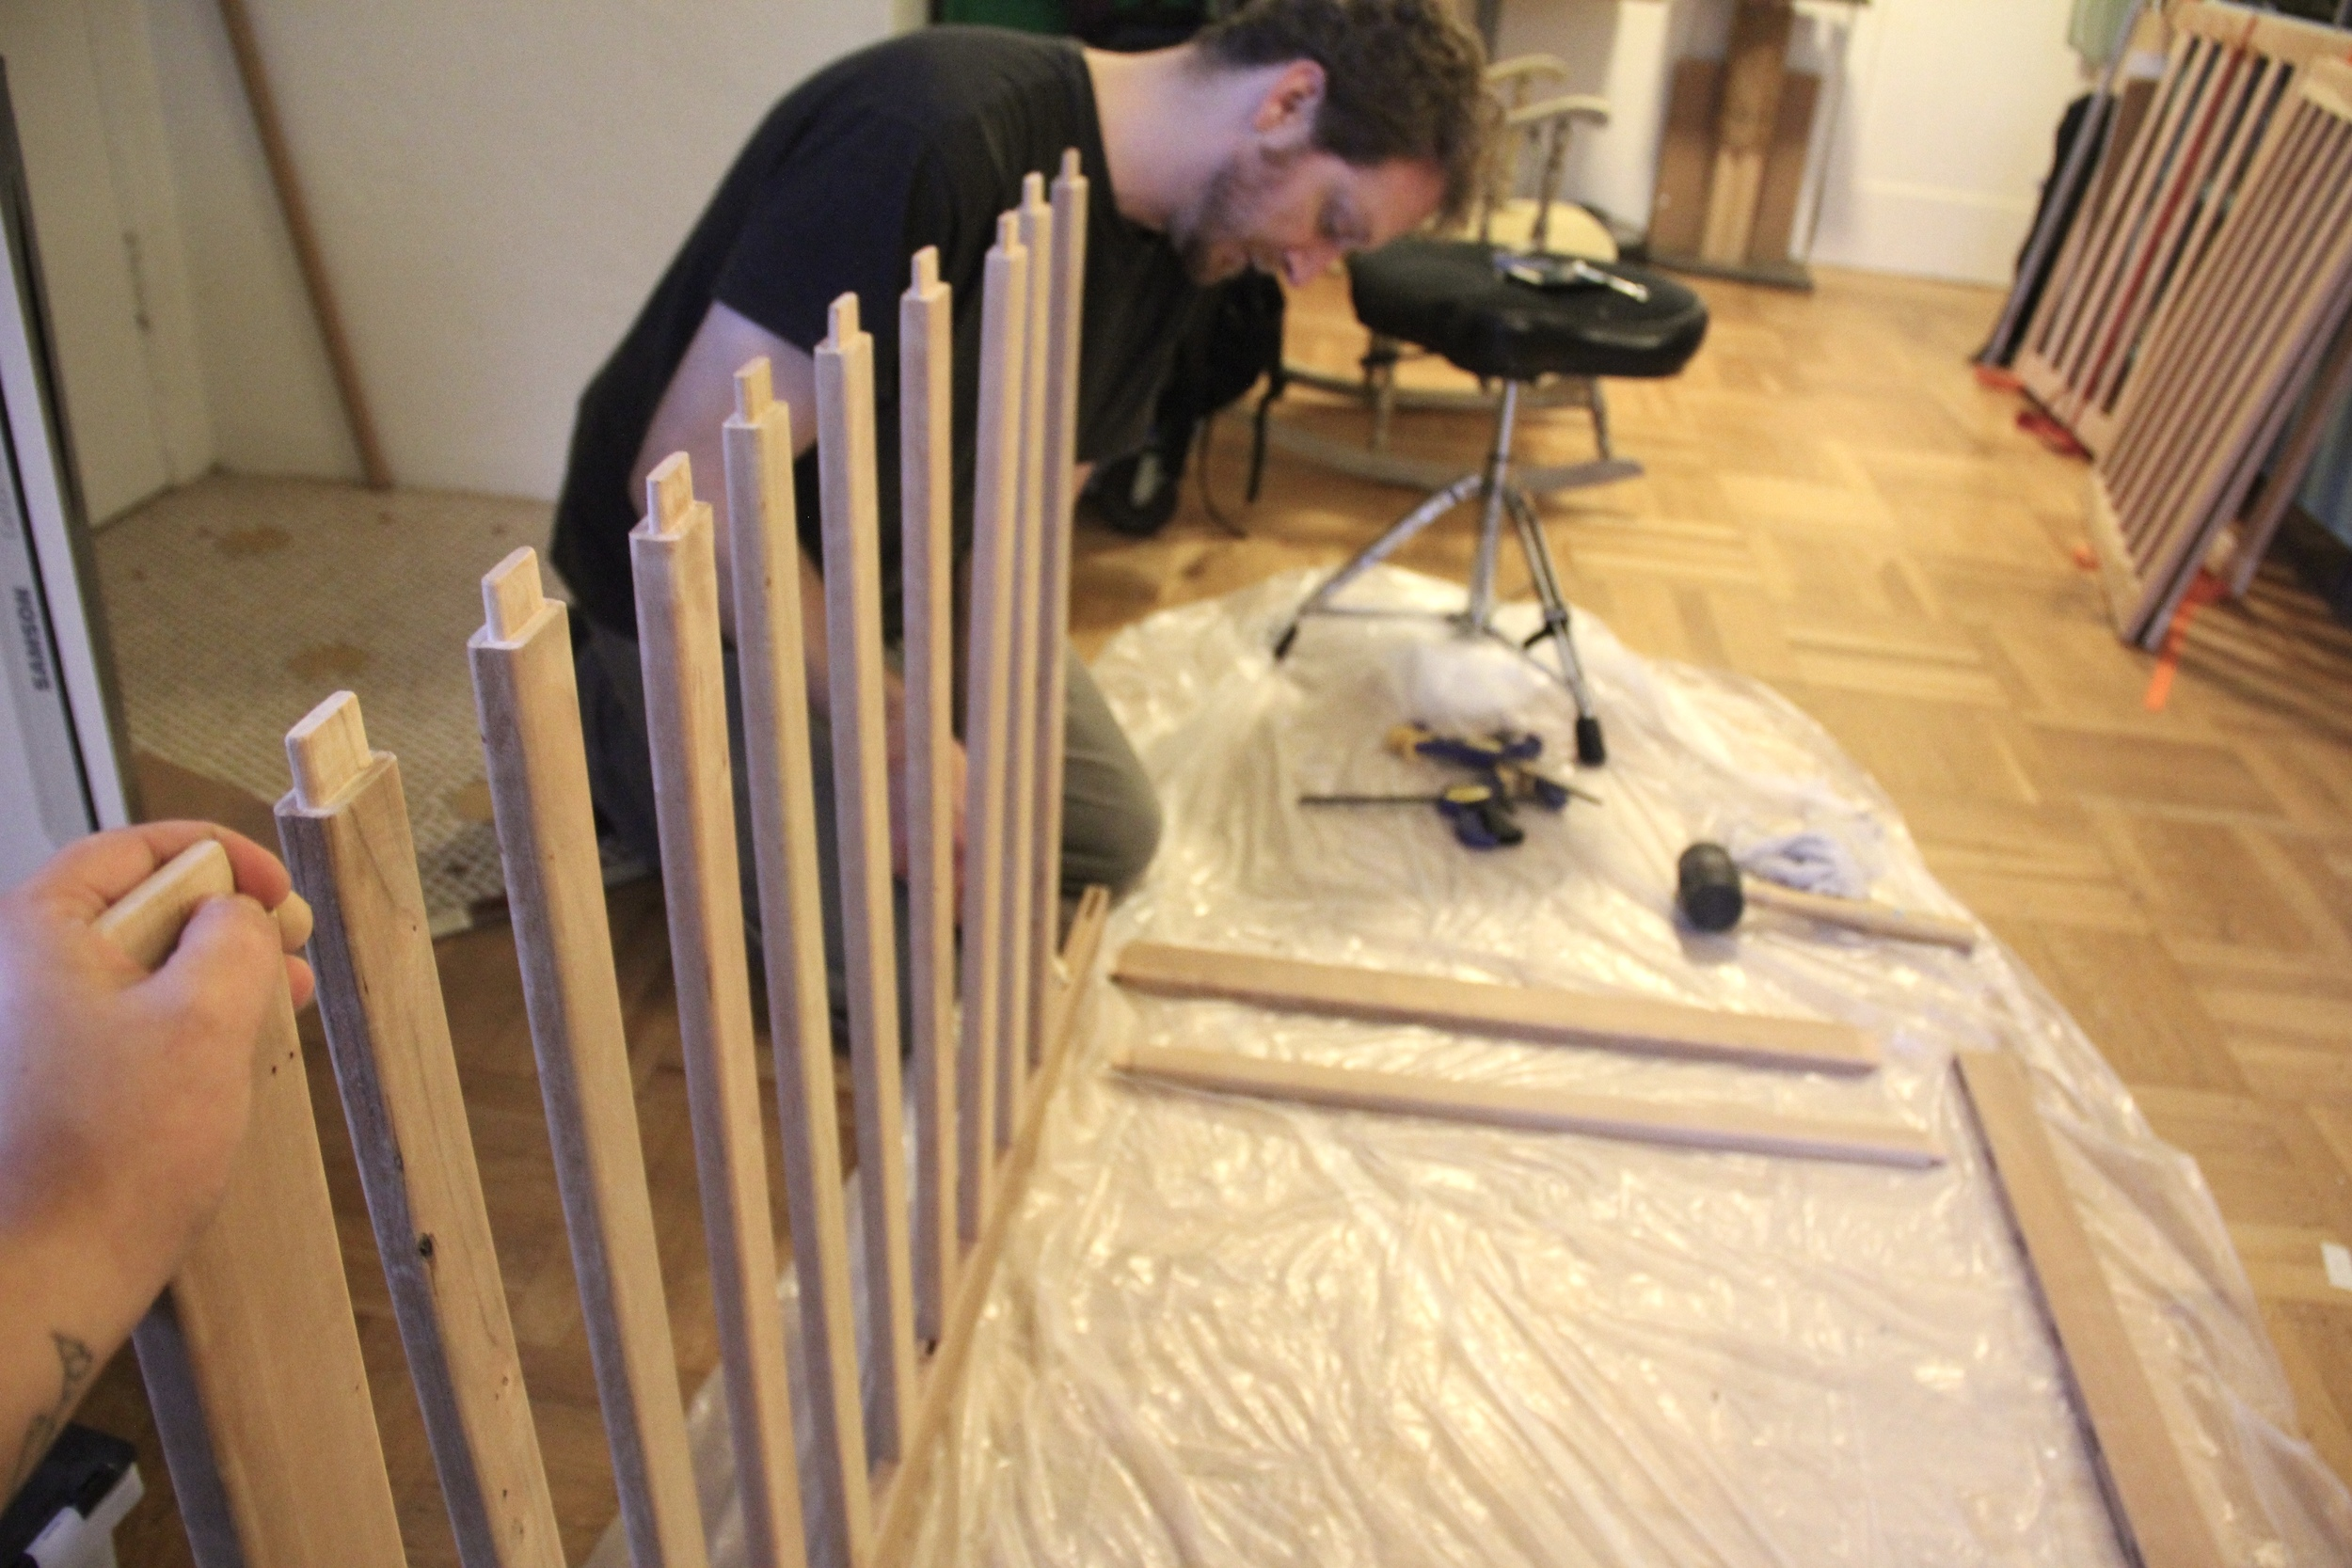 Gluing up the crib